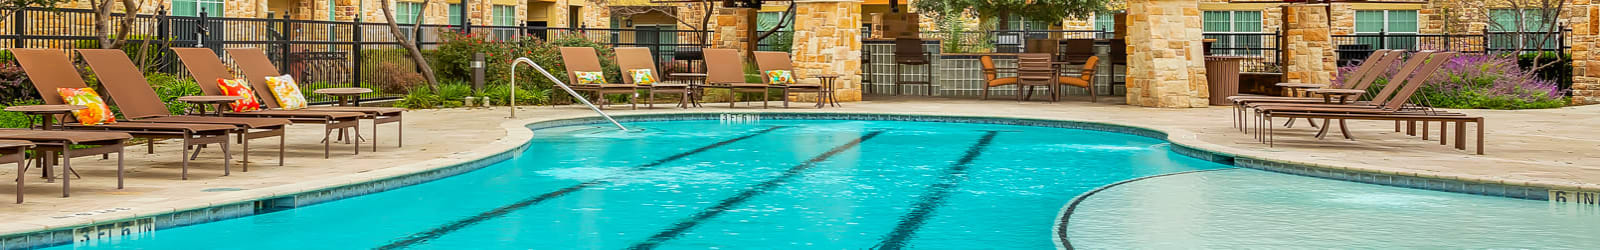 Apply at Villas in Westover Hills in San Antonio, Texas